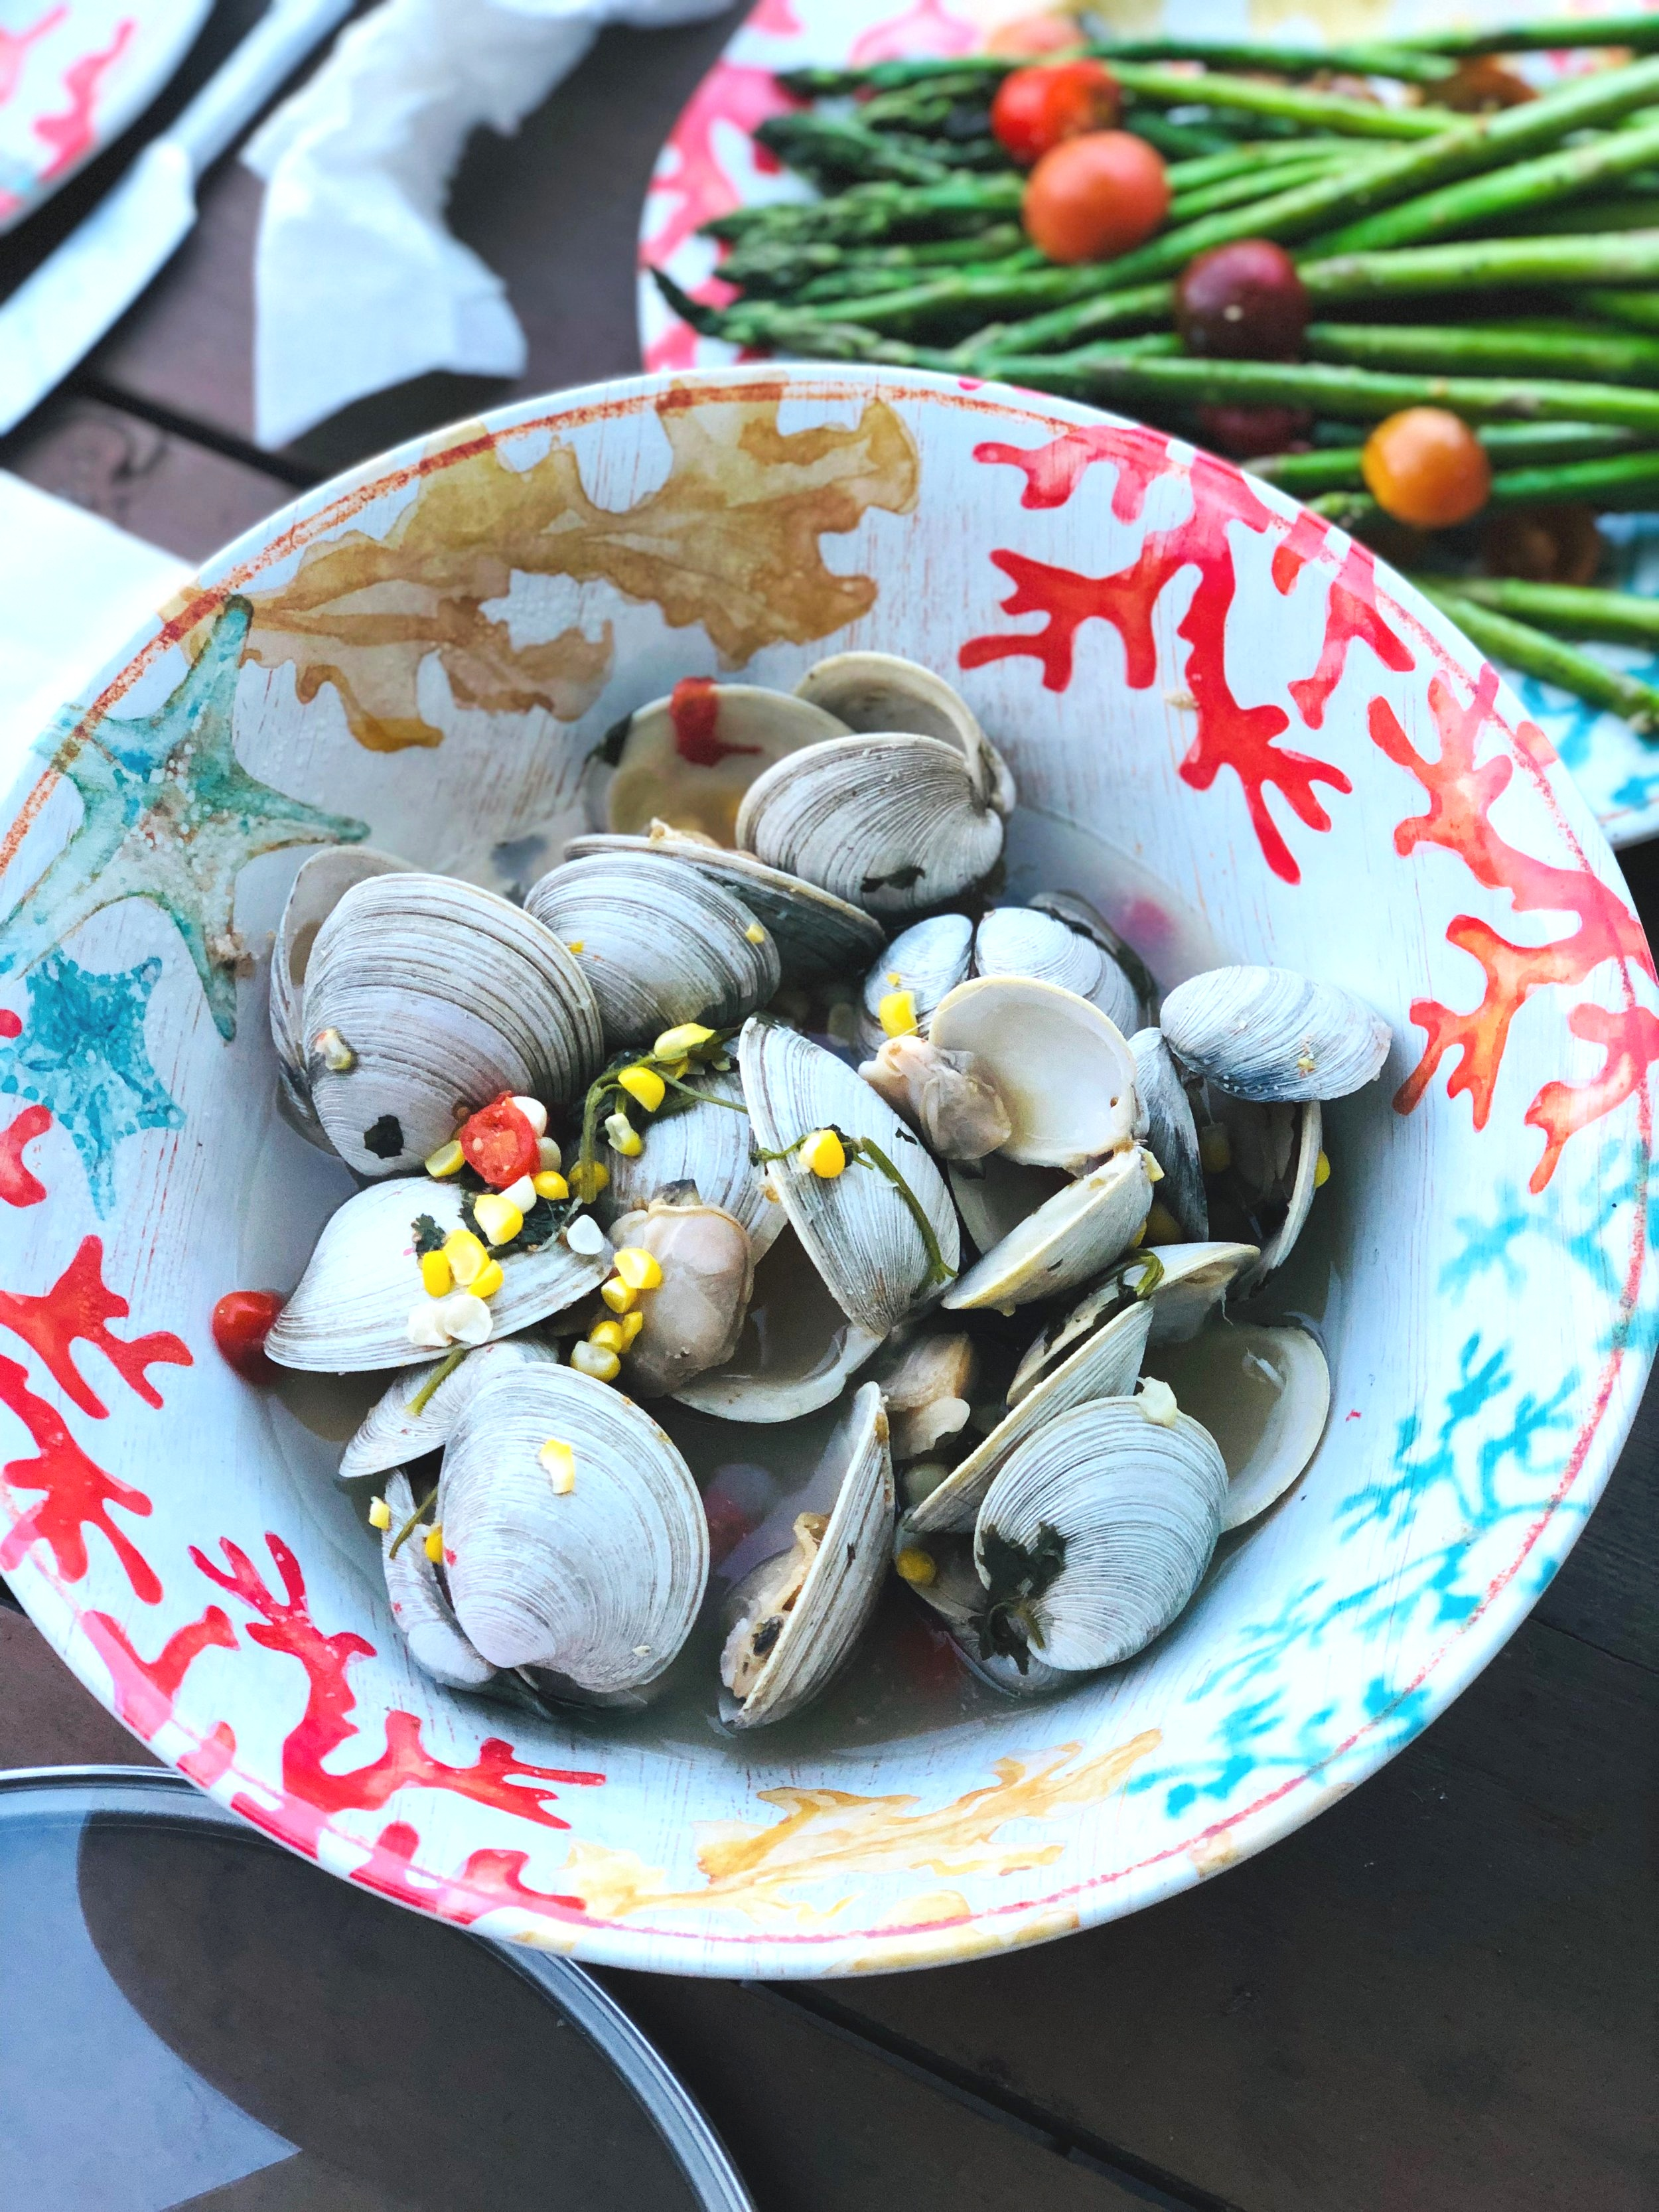 Open Up with this Summer Appetizer - Prep Time: 20 minutesServes: 4